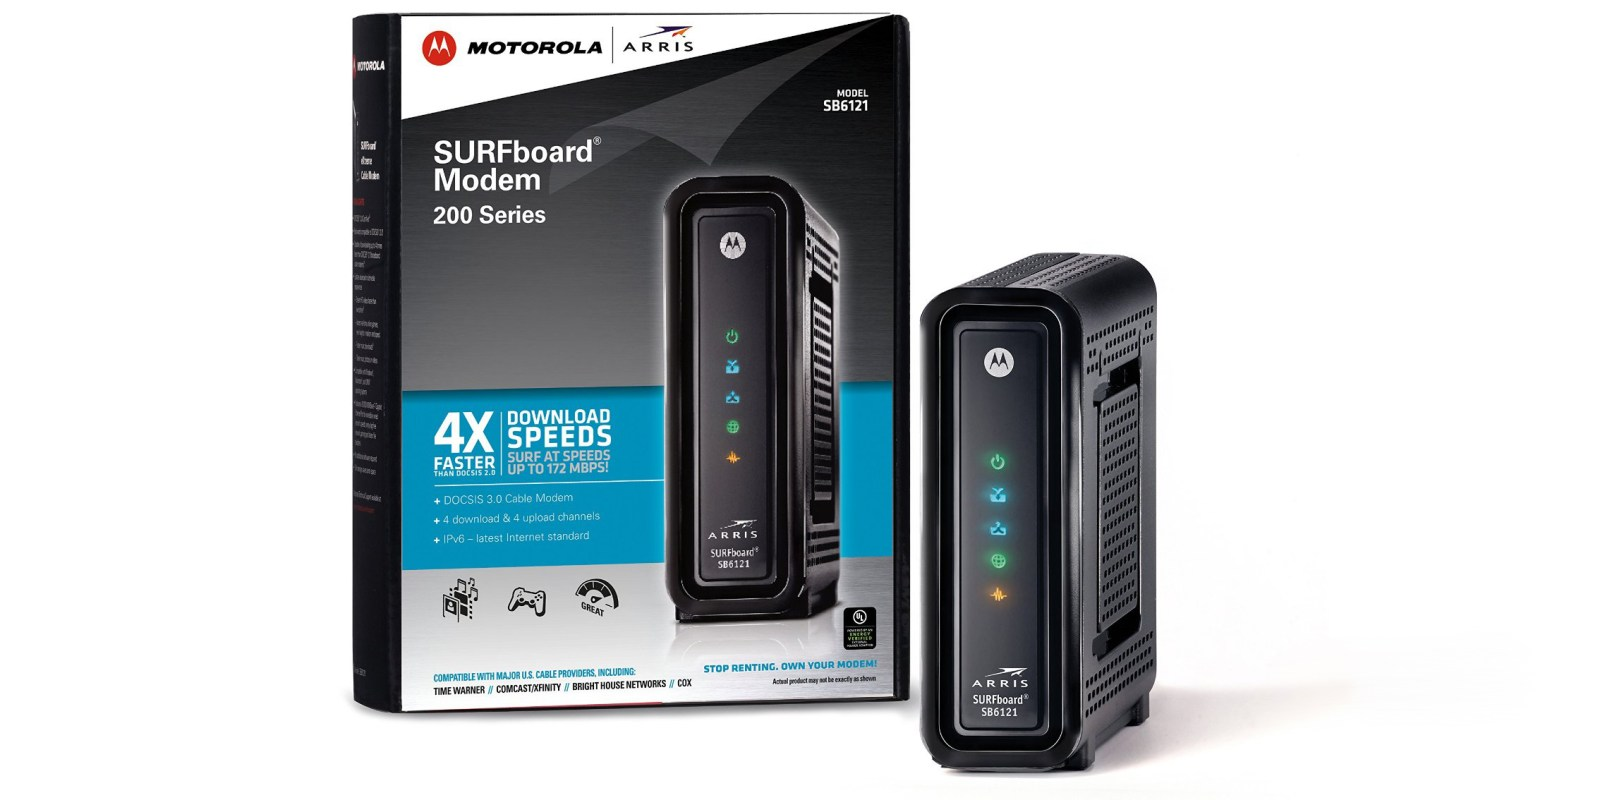 Daily Deals: Motorola SB6121 DOCSIS 3.0 Cable Modem (Refurb) $30, Logitech Type+ Bluetooth Keyboard for iPad Air $20, more